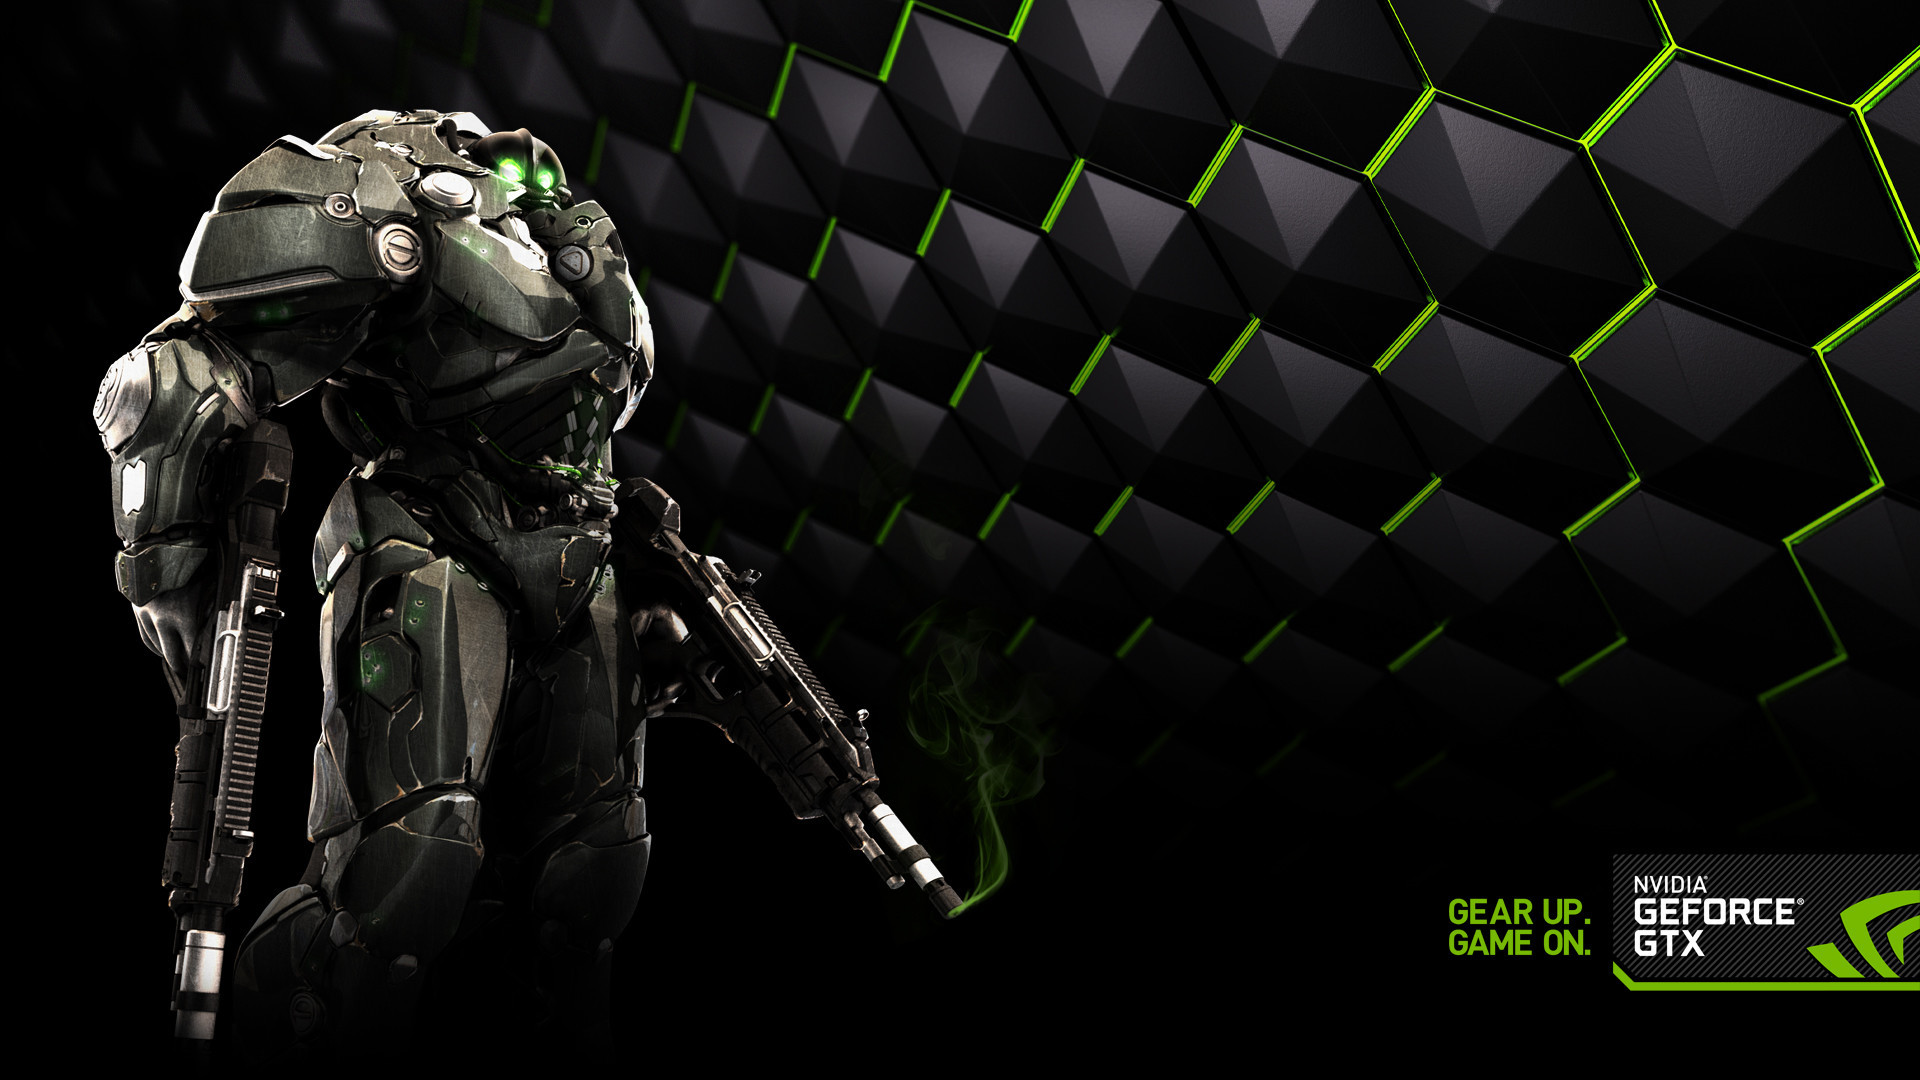 1920x1080  Gallery images and information: Nvidia Evga Wallpaper